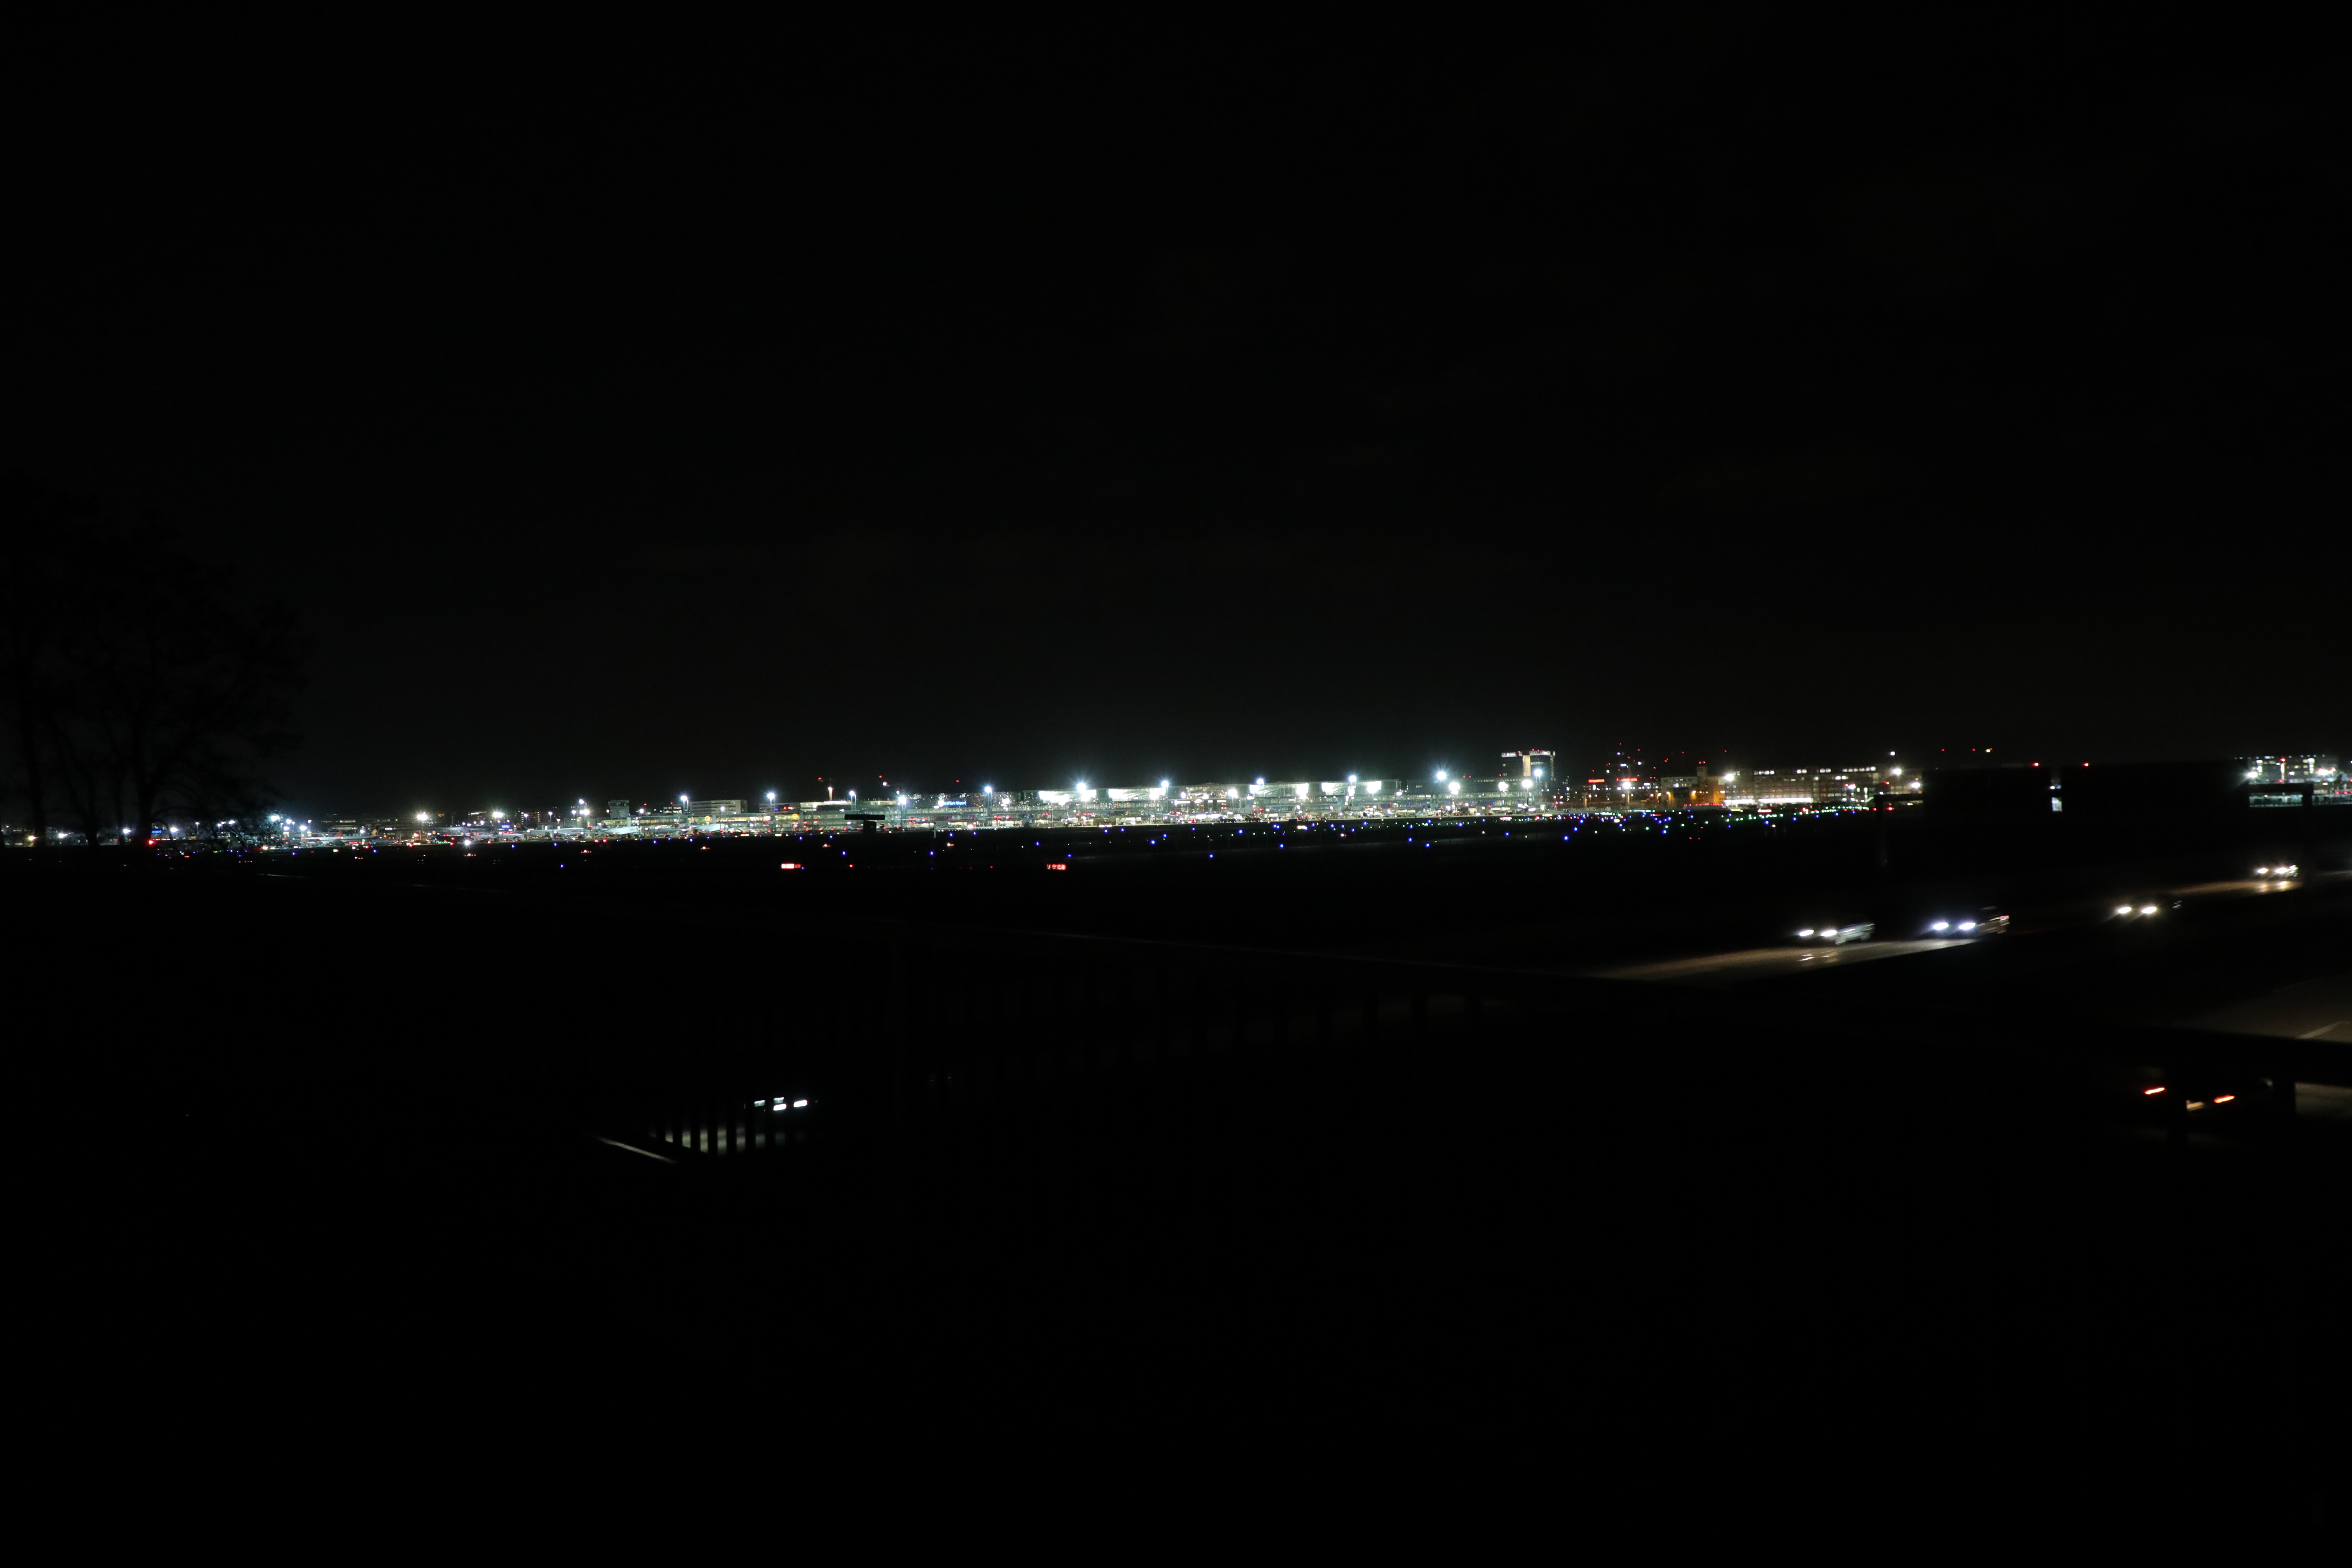 574B8557.JPG -  Frankfurt Airport  lights